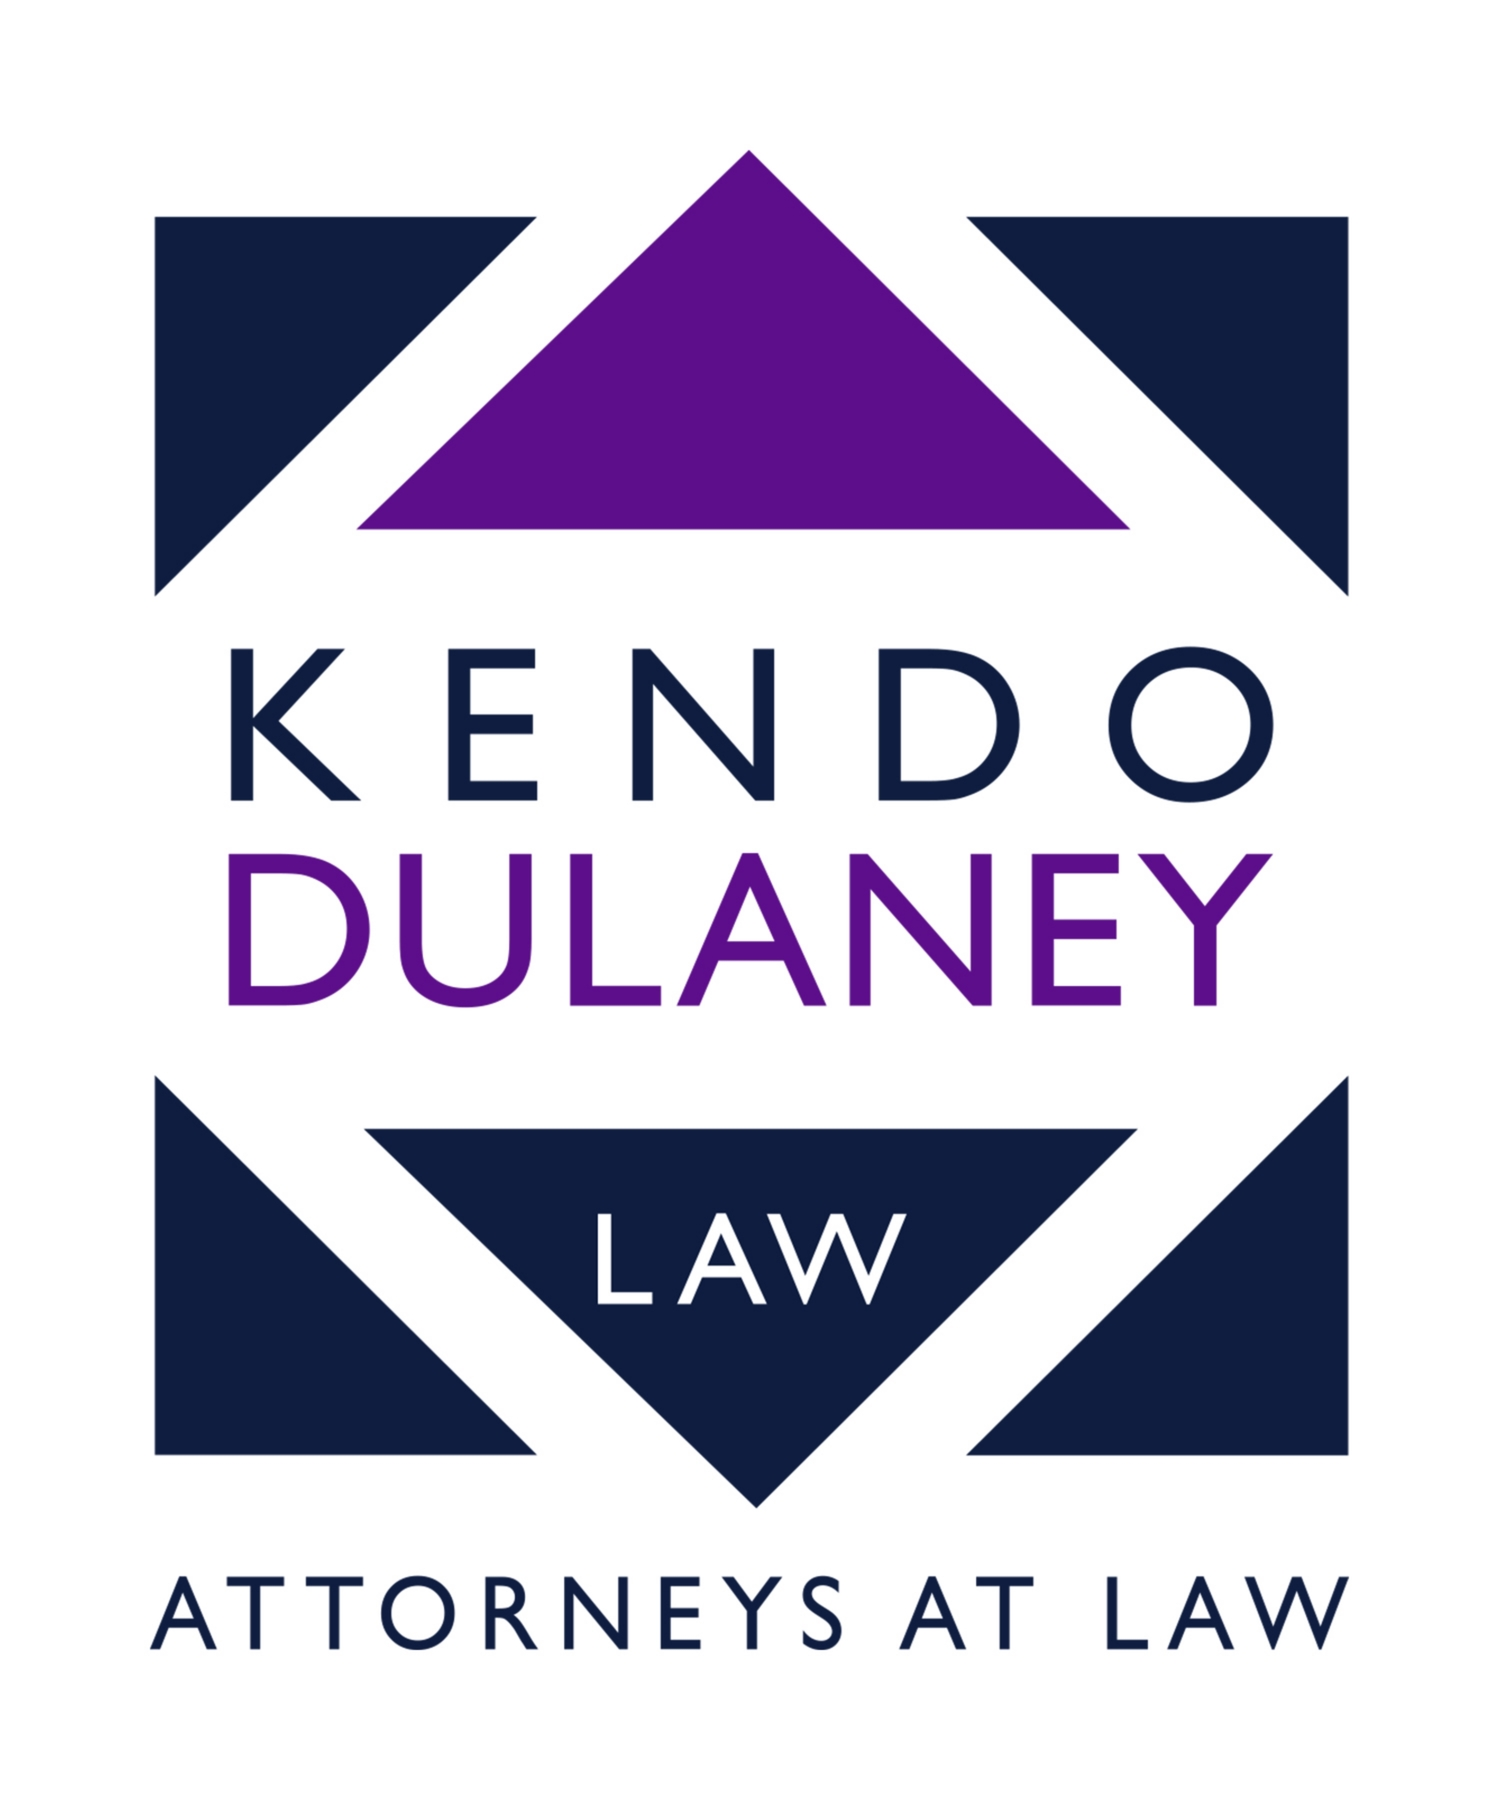 Kendo Dulaney Law